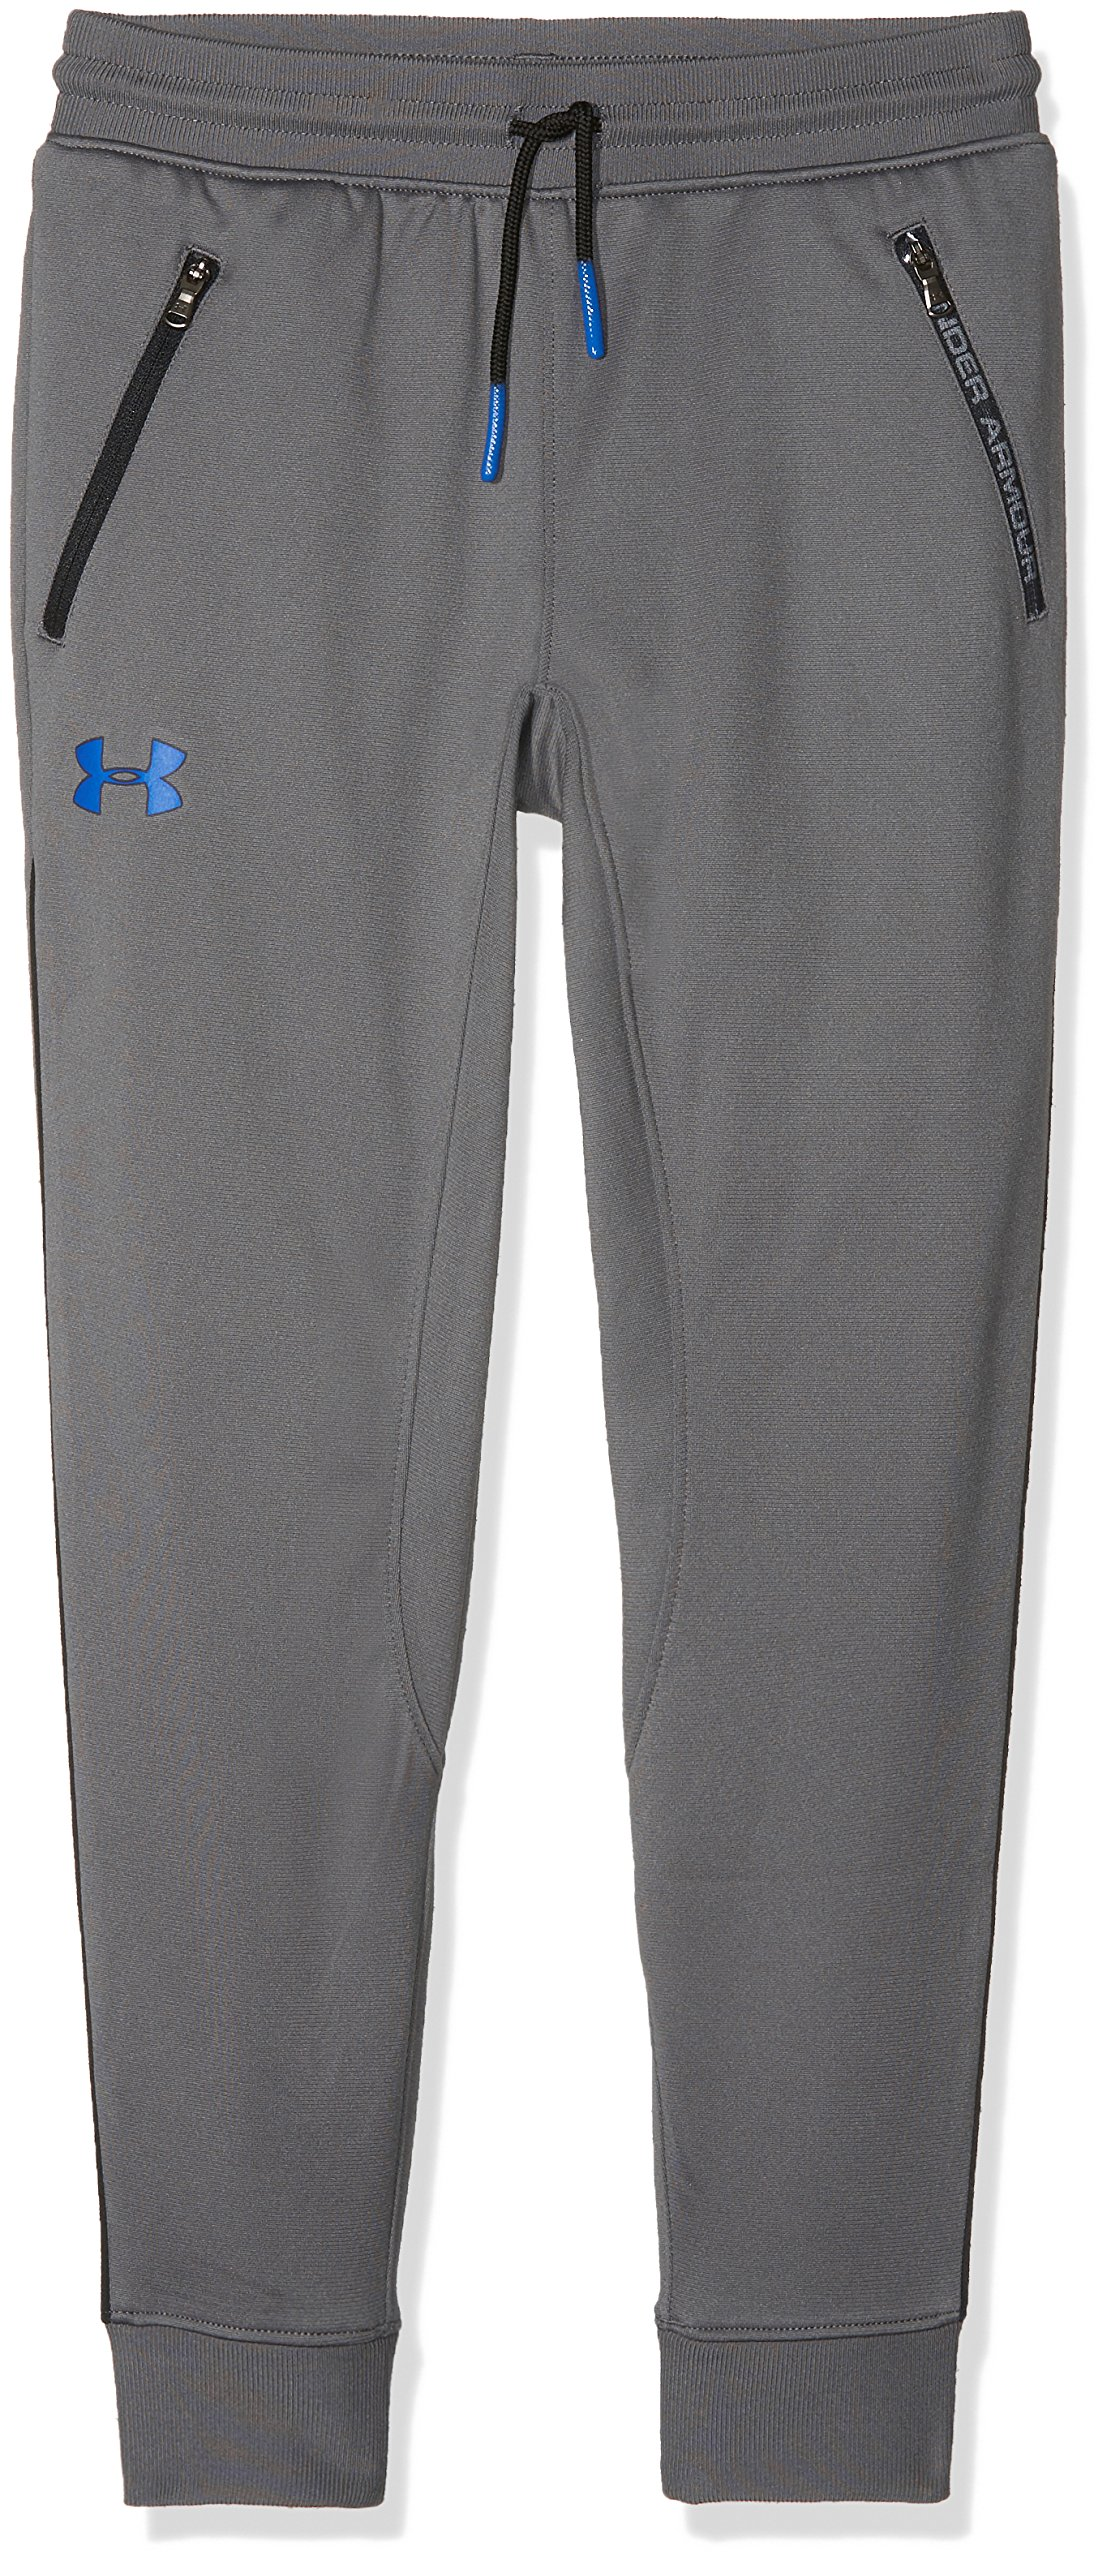 Under Armour Boys' Pennant Tapered Pants,Graphite /Ultra Blue, Youth Medium